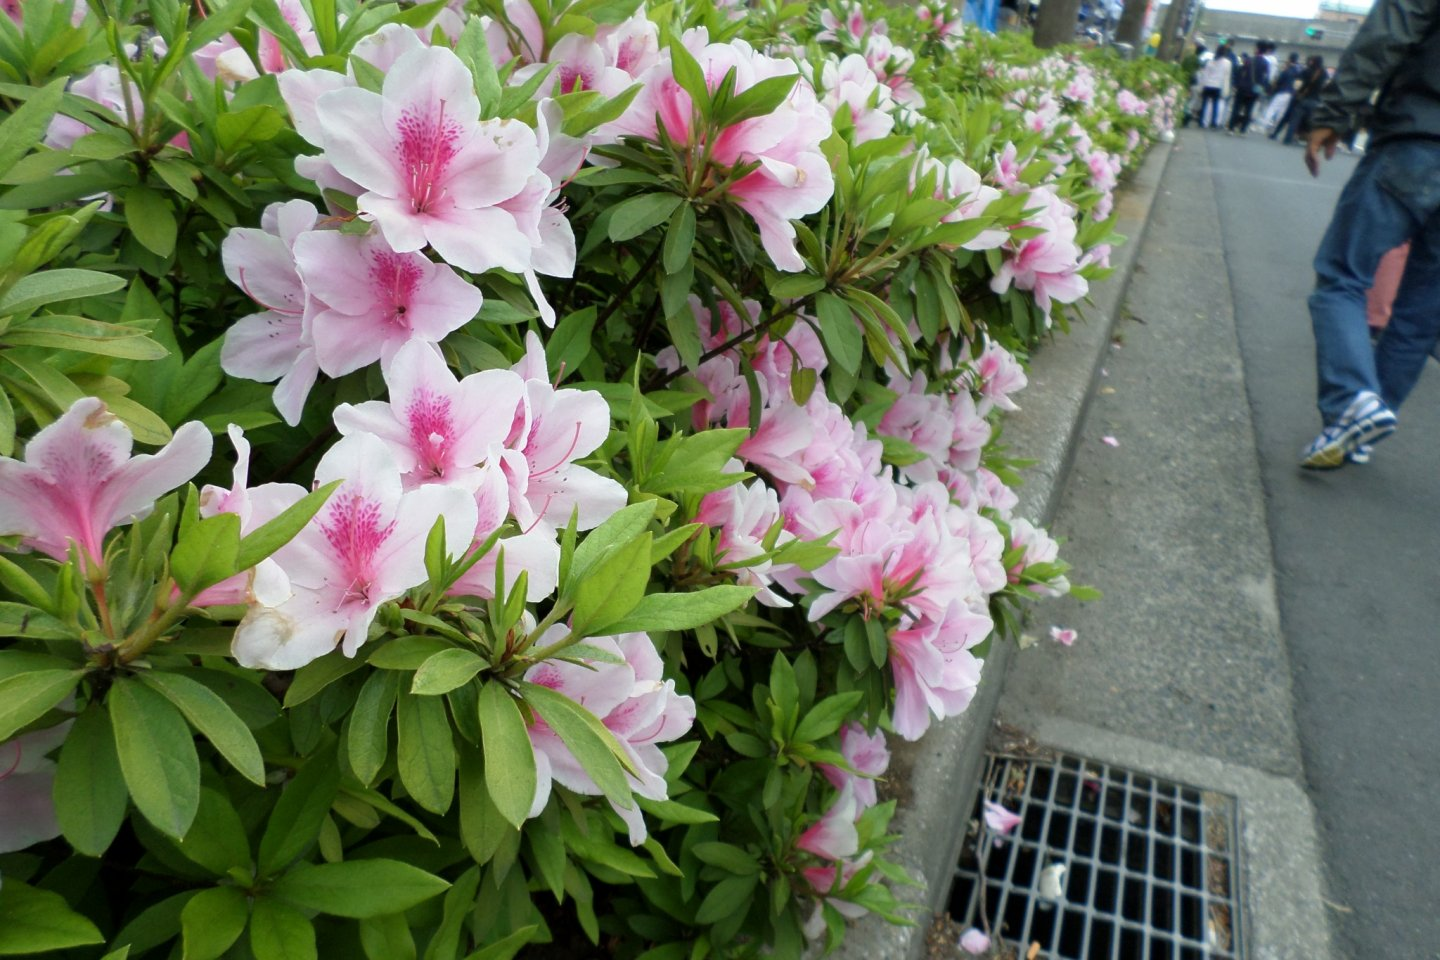 Azalea plants lined the streets of Yachiyo. No matter where you turned, you kept running into more and more beautiful flowers.